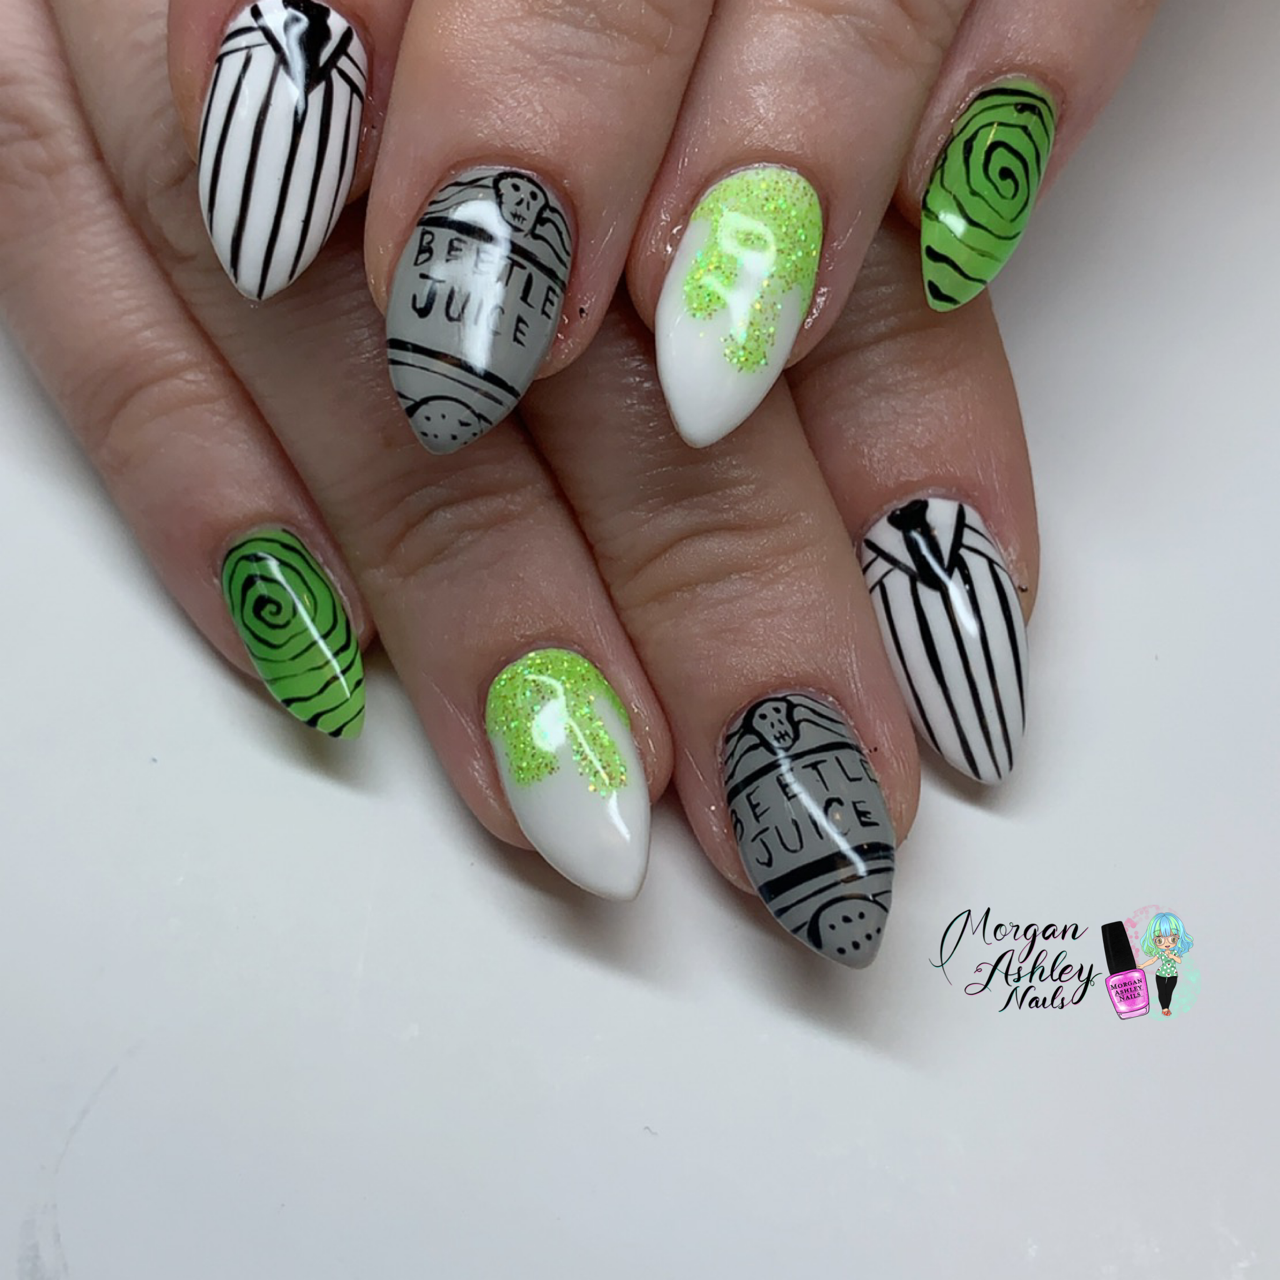 Day 304: Beetlejuice and Nightmare Nail Art